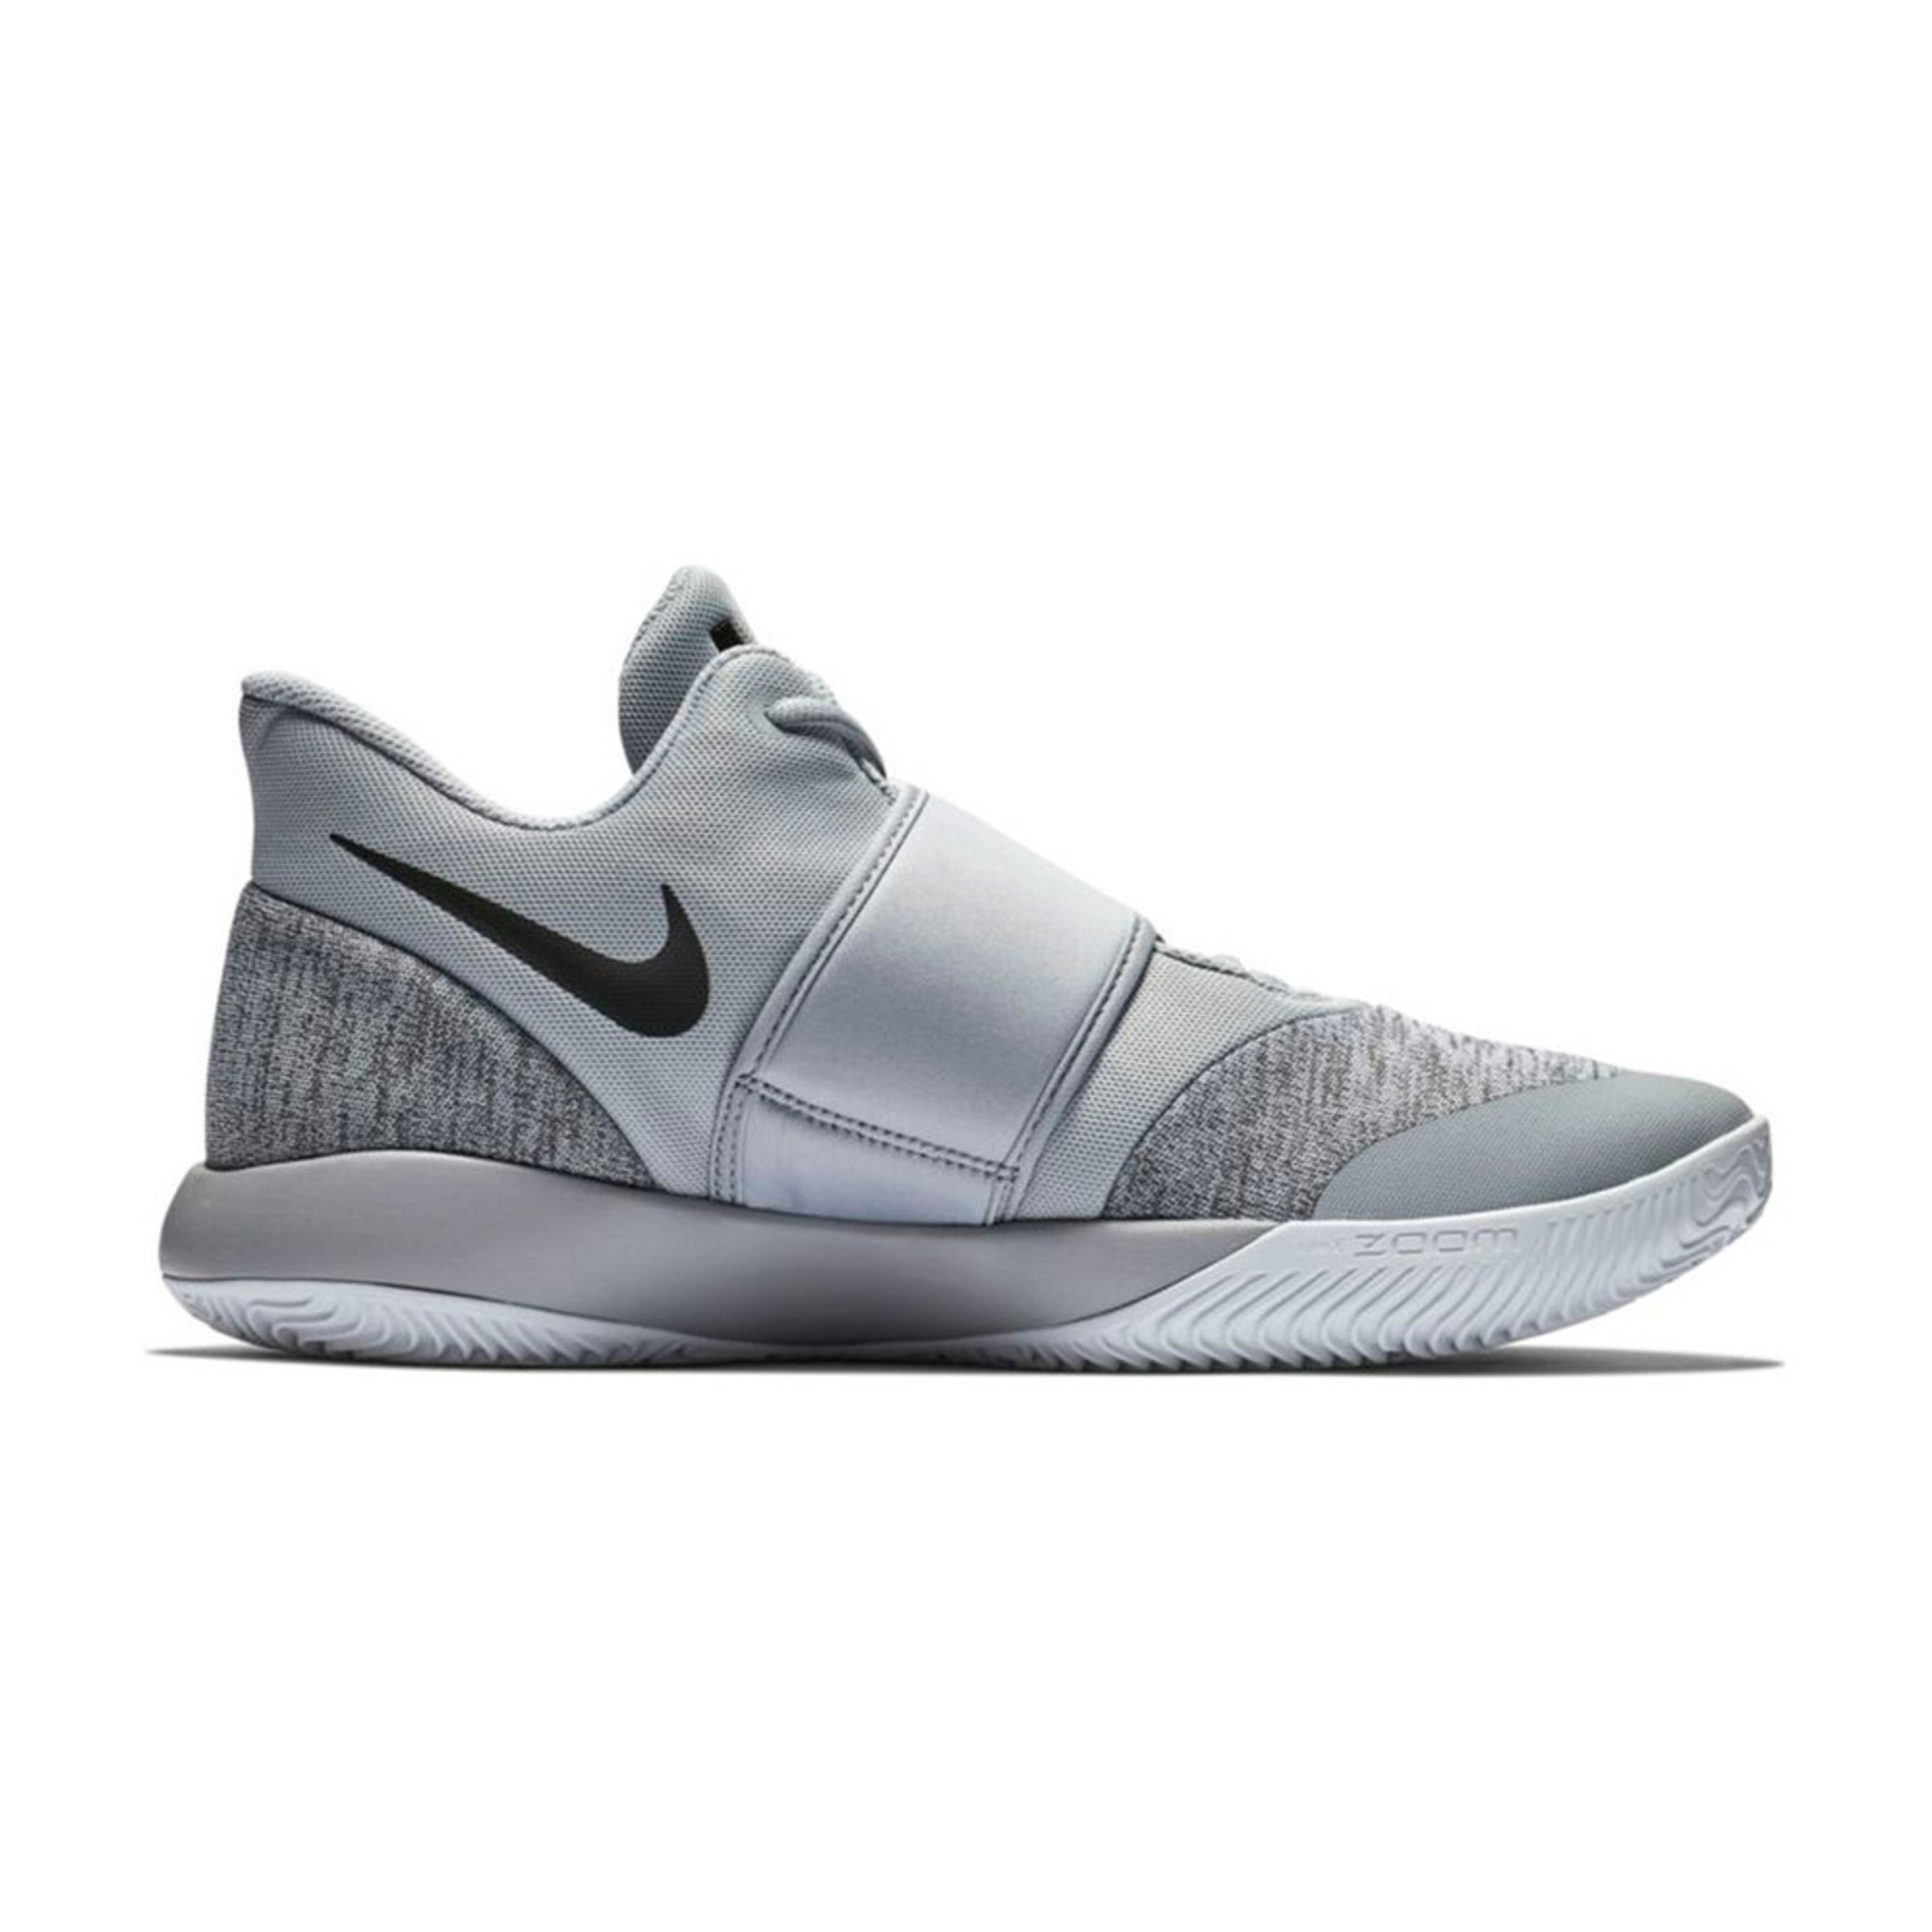 promo code 9ec08 fca0e Nike. Nike Mens KD Trey 5 VI Basketball Shoe. Product Rating